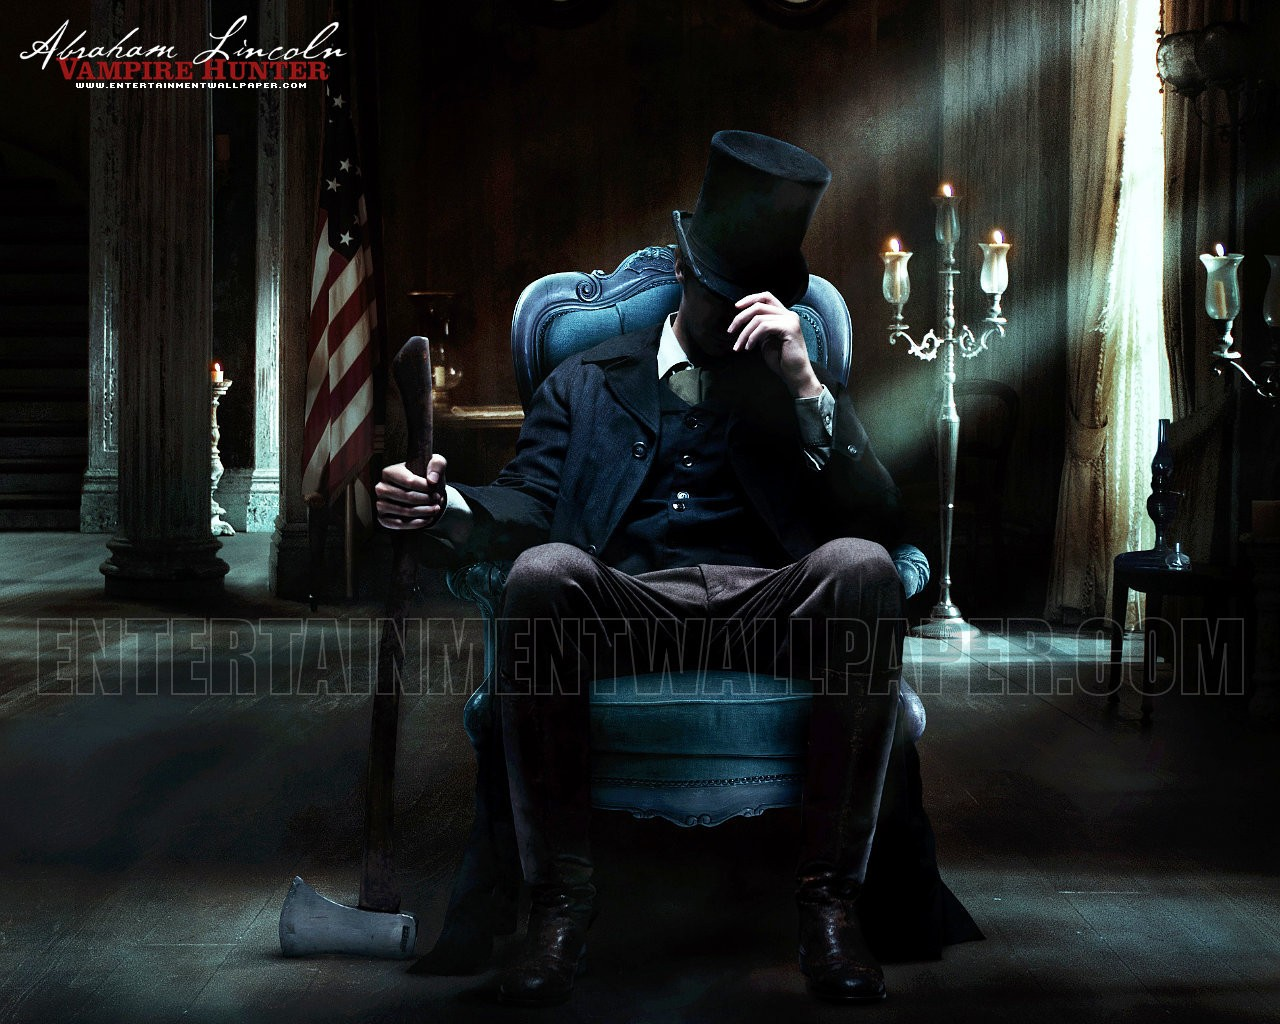 http://images5.fanpop.com/image/photos/31500000/Abraham-Lincoln-abraham-lincoln-vampire-hunter-31543013-1280-1024.jpg